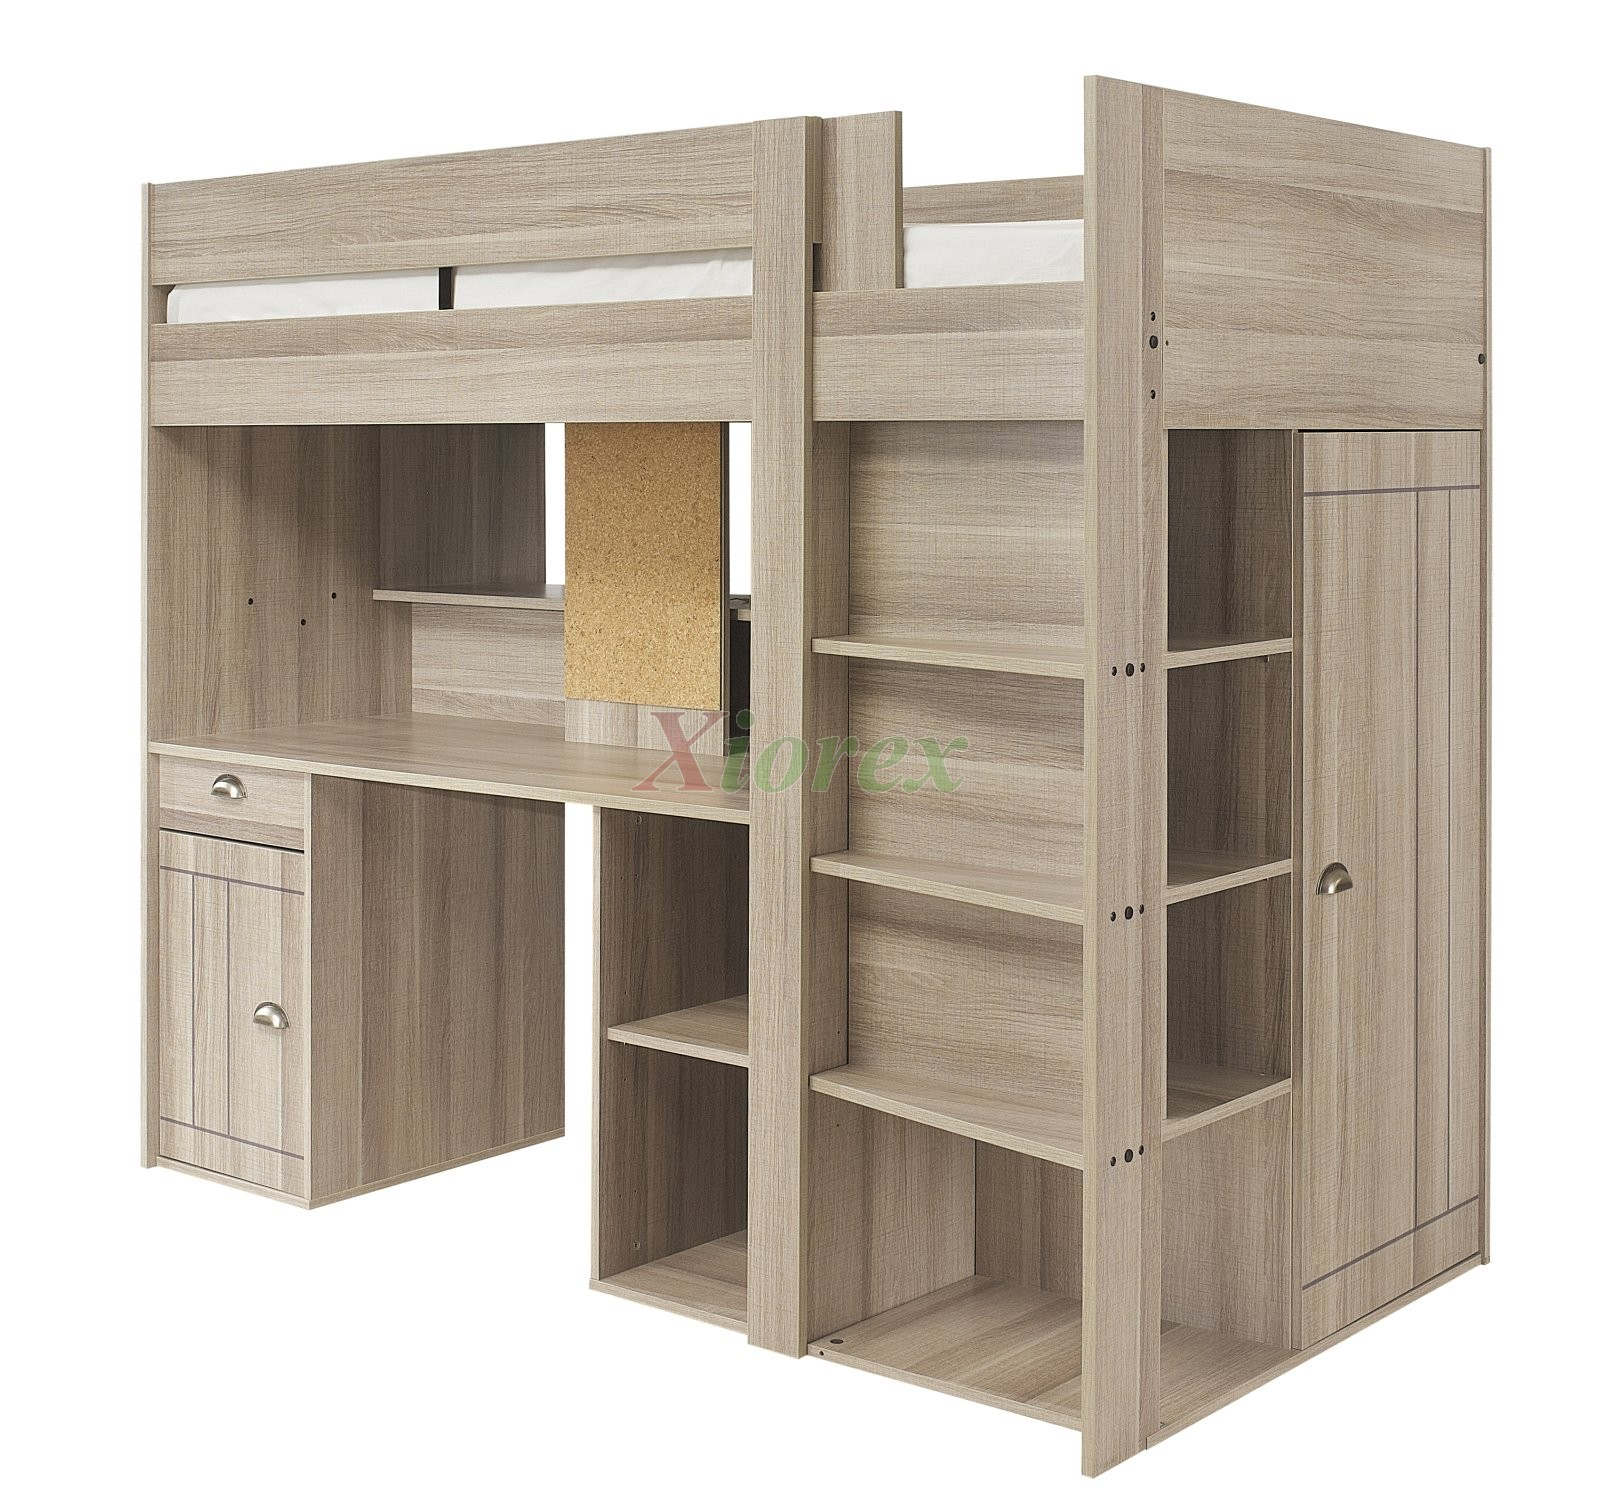 Gami largo loft beds for teens canada with desk closet for Bureau gautier